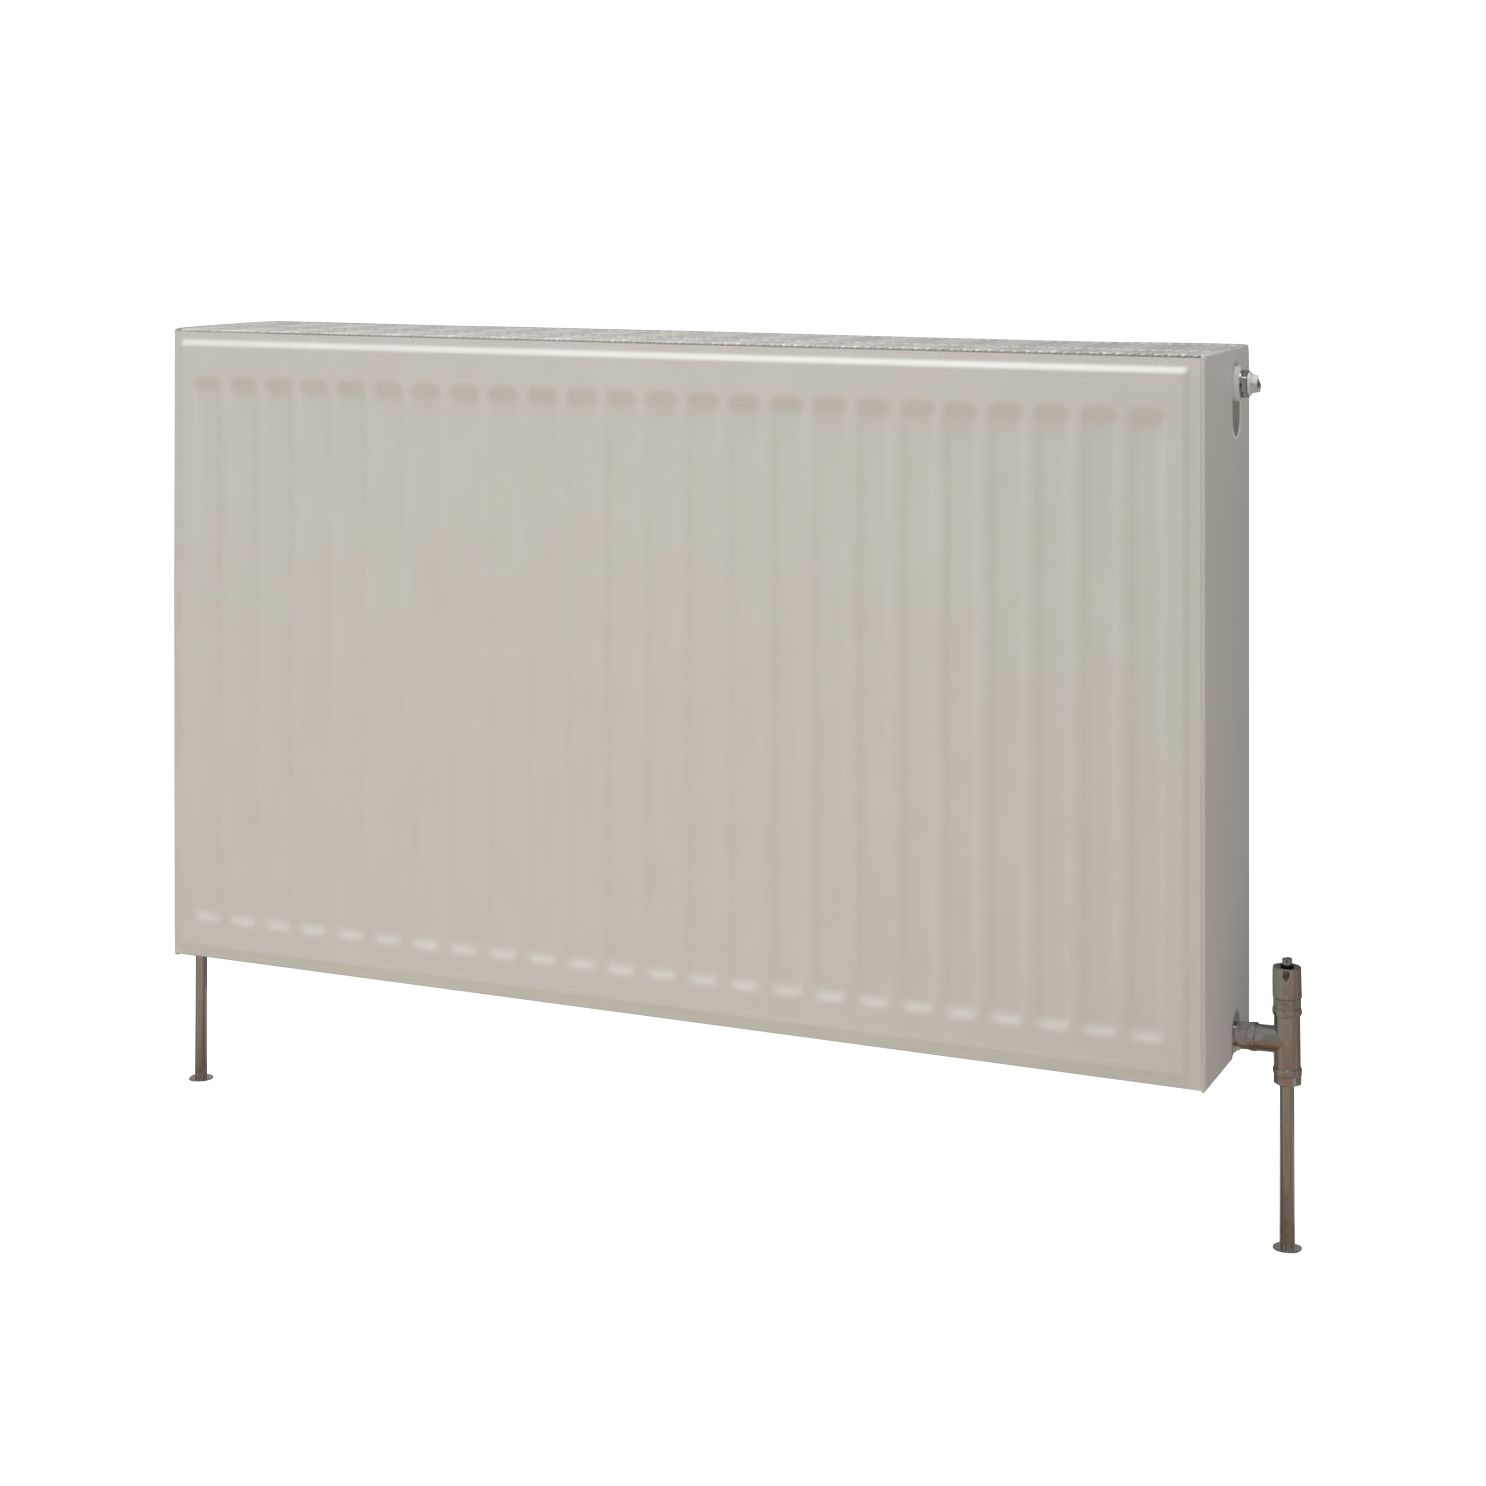 Kudox Premium double radiator Gloss (H)700 mm (W)700